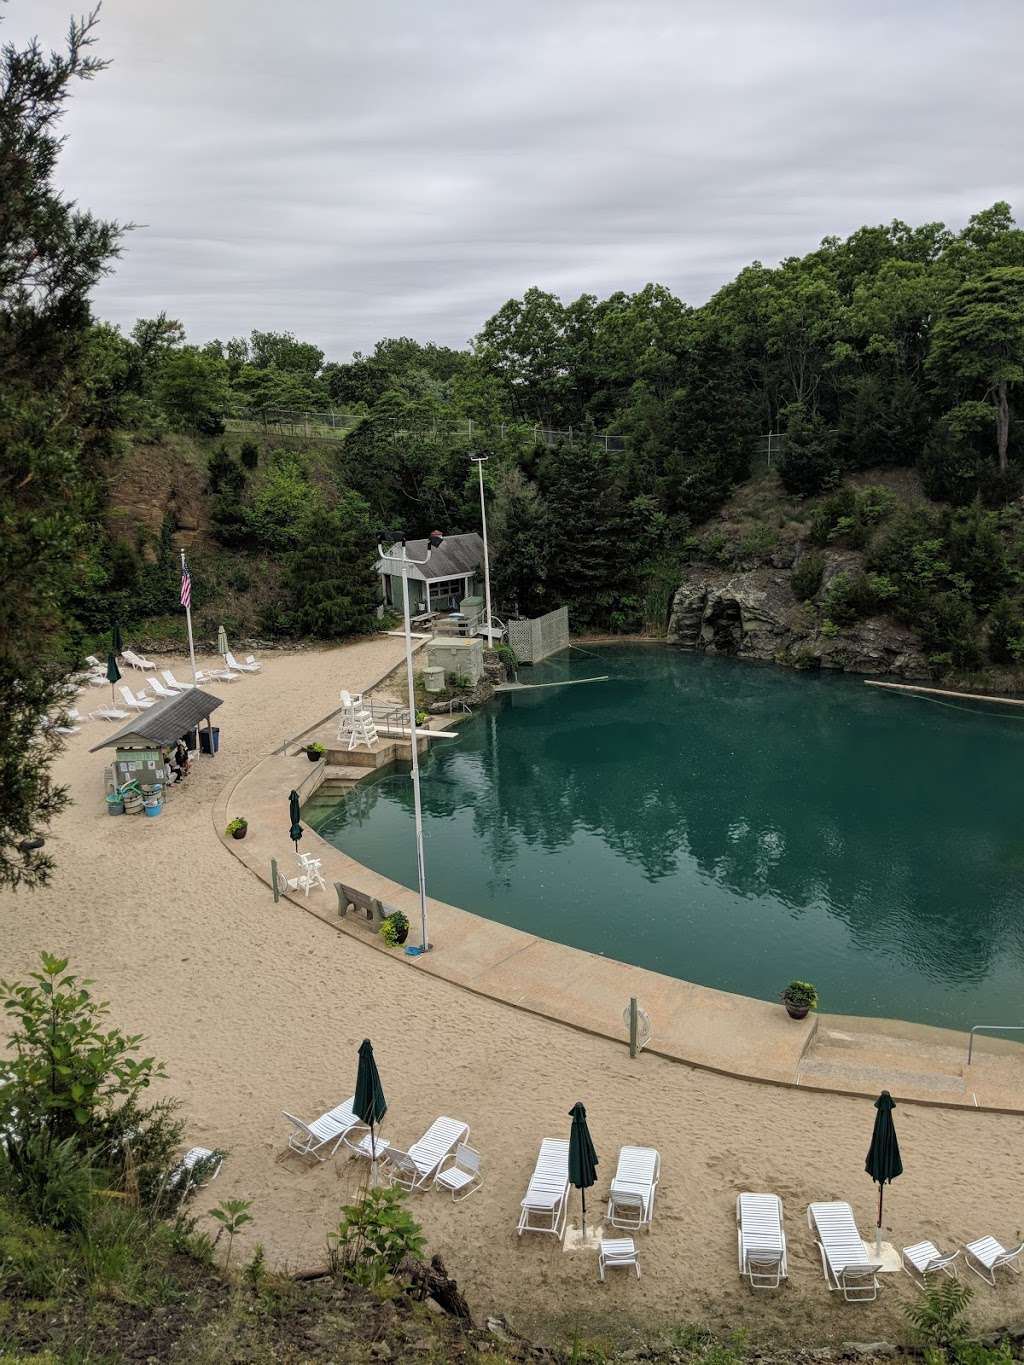 Quarry Pool Association - lodging  | Photo 2 of 5 | Address: 1146 S New St, West Chester, PA 19382, USA